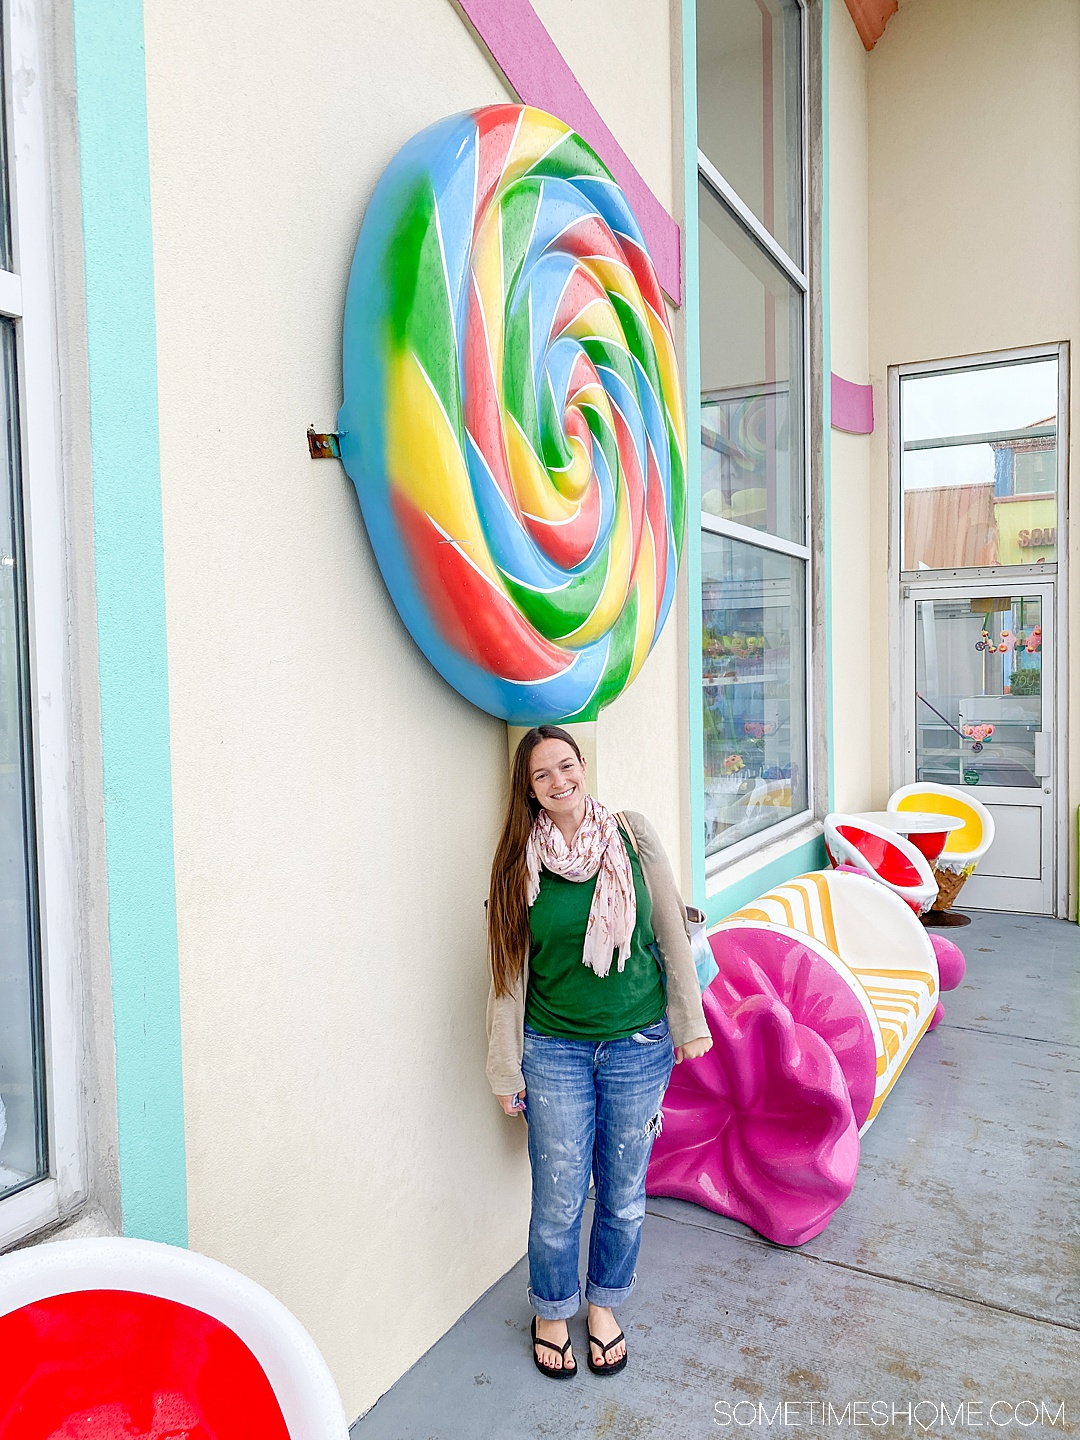 A woman standing in front of a colorful, oversized rainbow swirl lollipop in the Outer Banks of North Carolina.